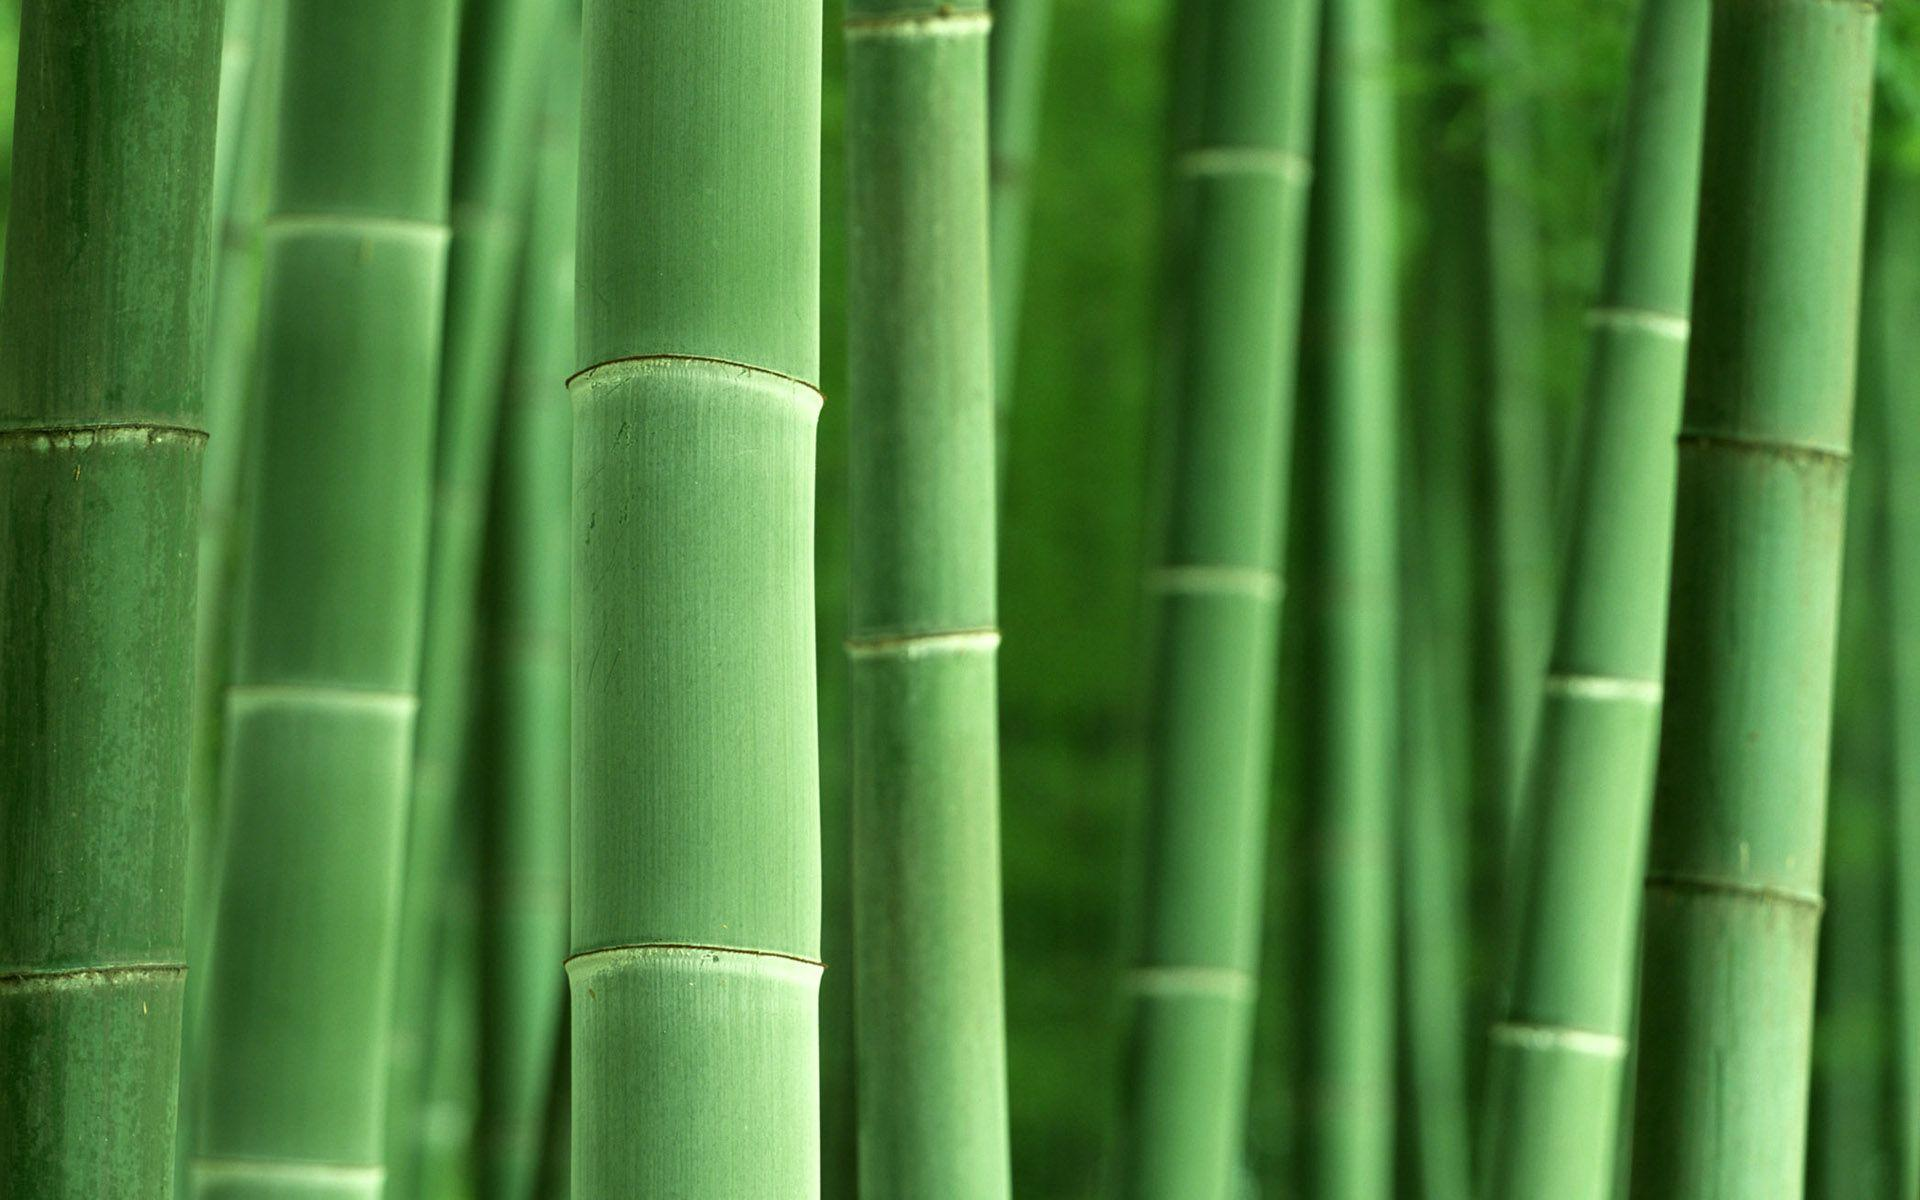 Bamboo Desktop Wallpapers Wallpaper Cave